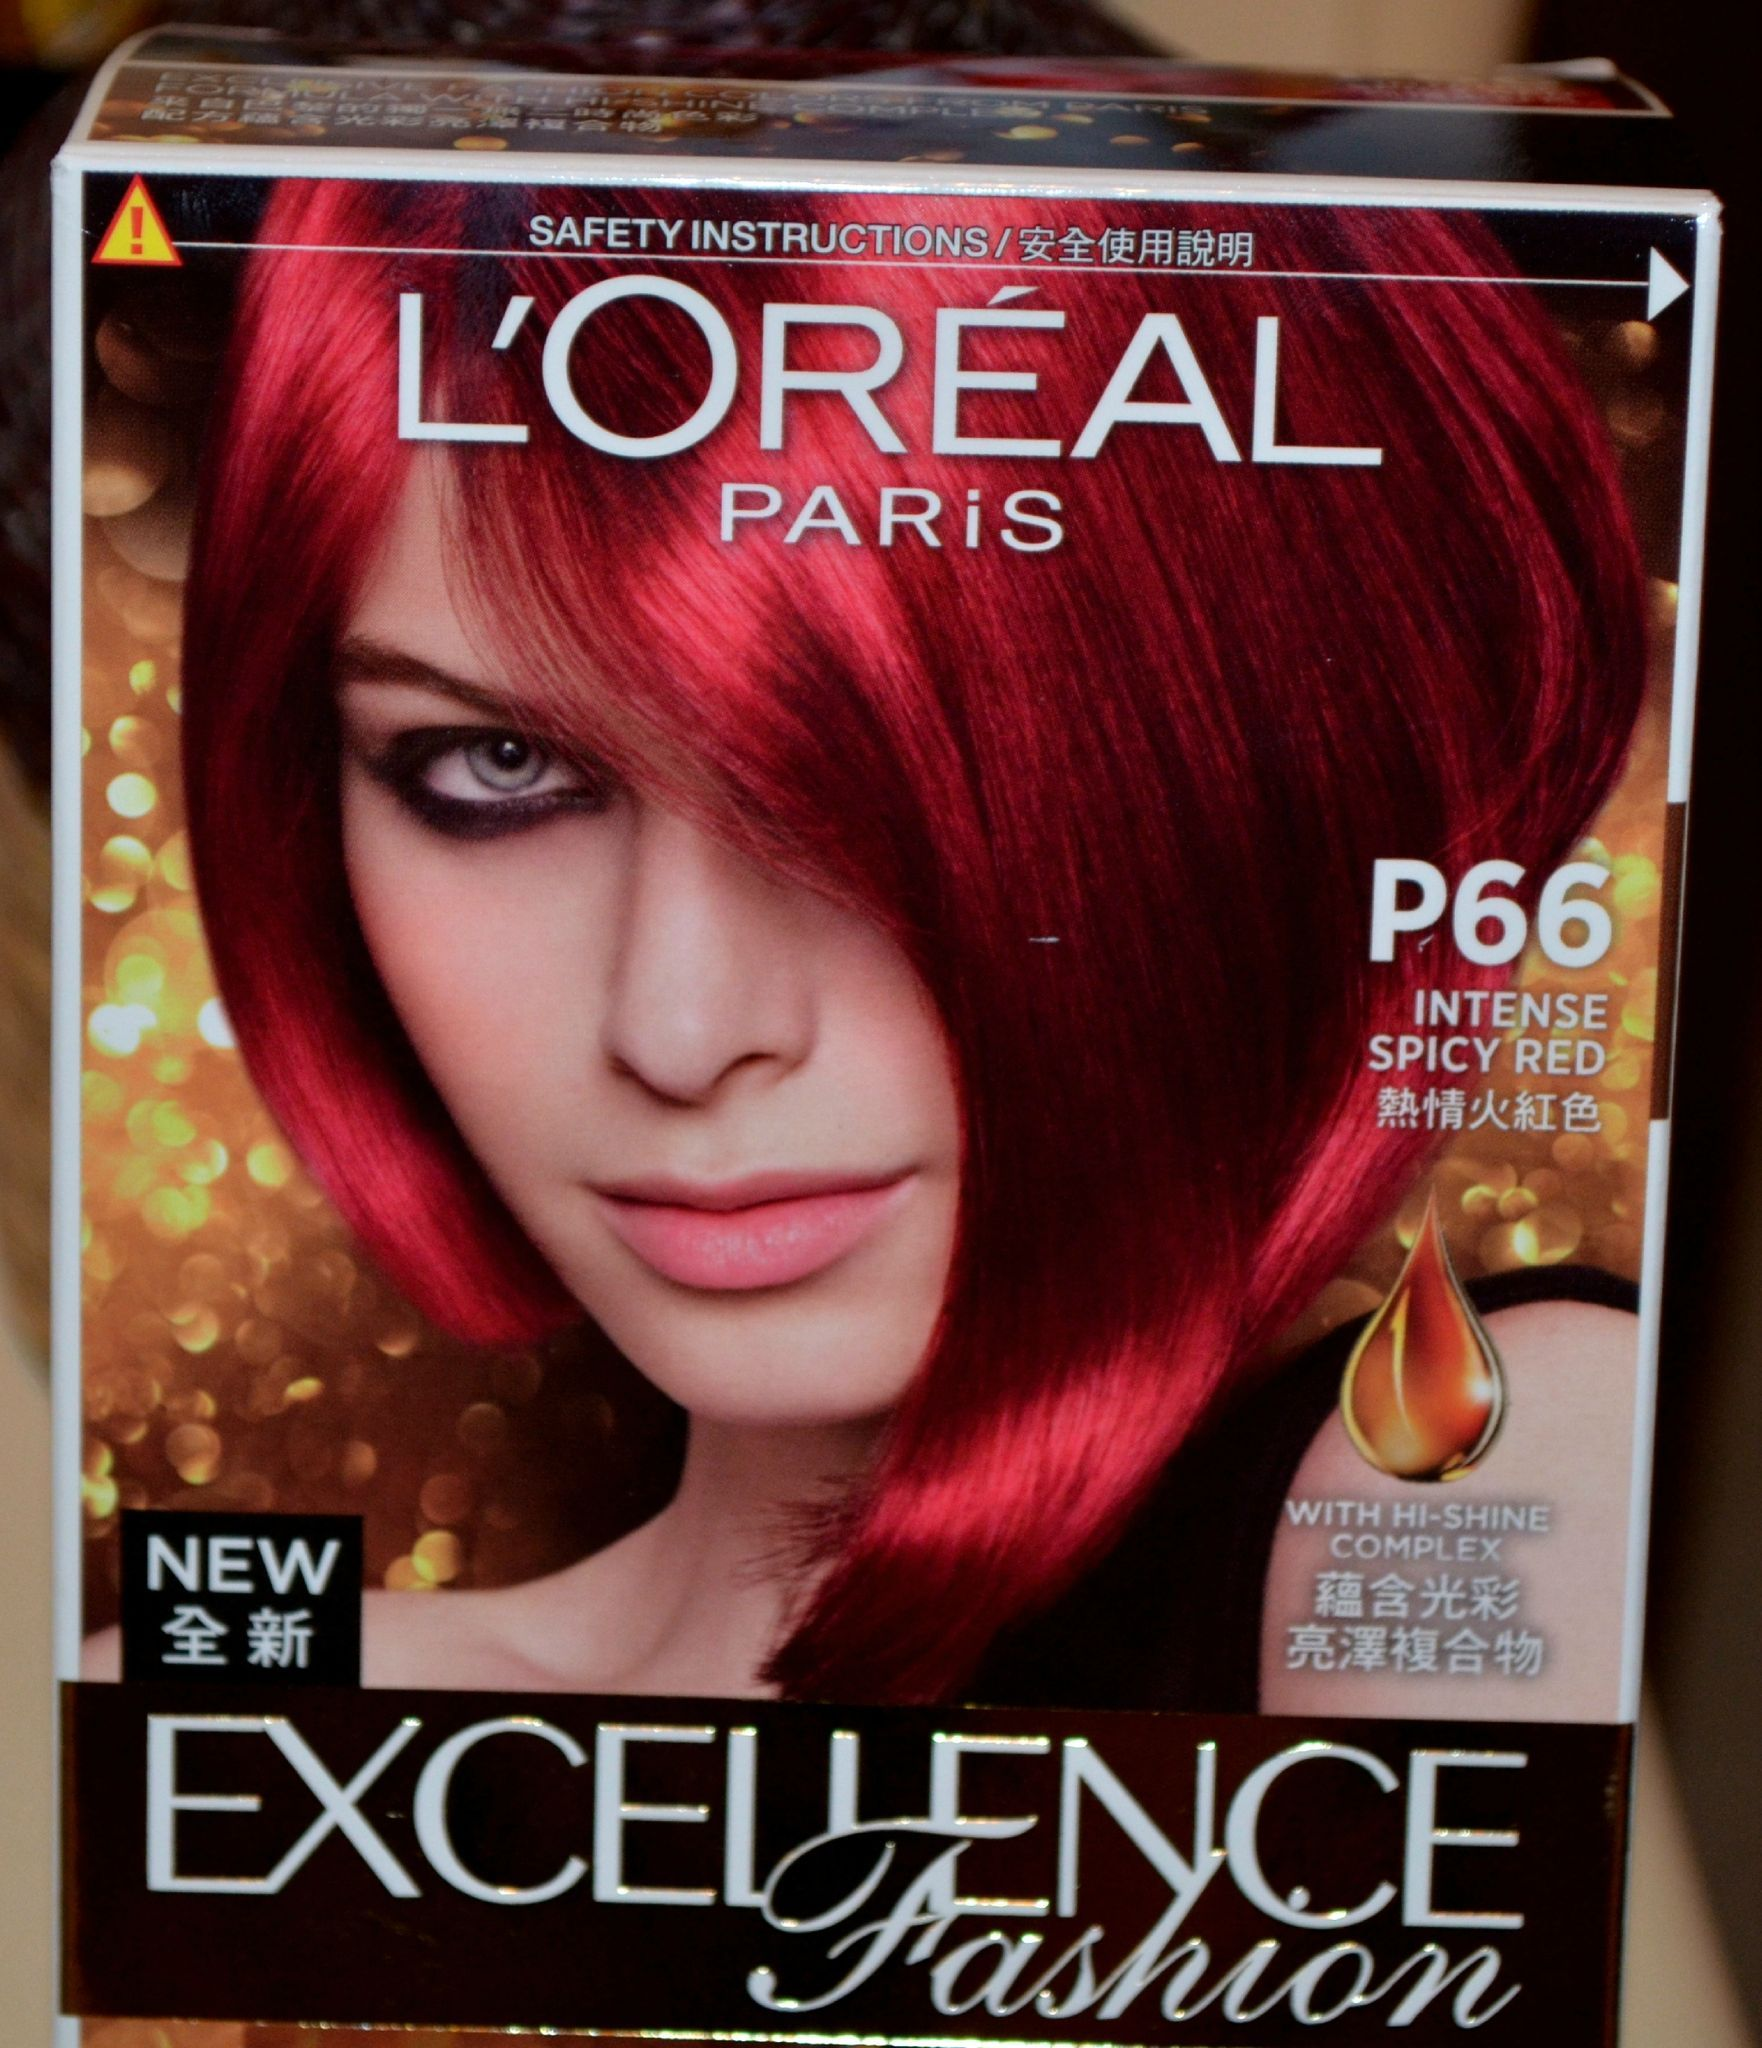 1000 images about couleur cheveux on pinterest christmas nail art bouncy curls and search - Coloration Rouge L Oreal